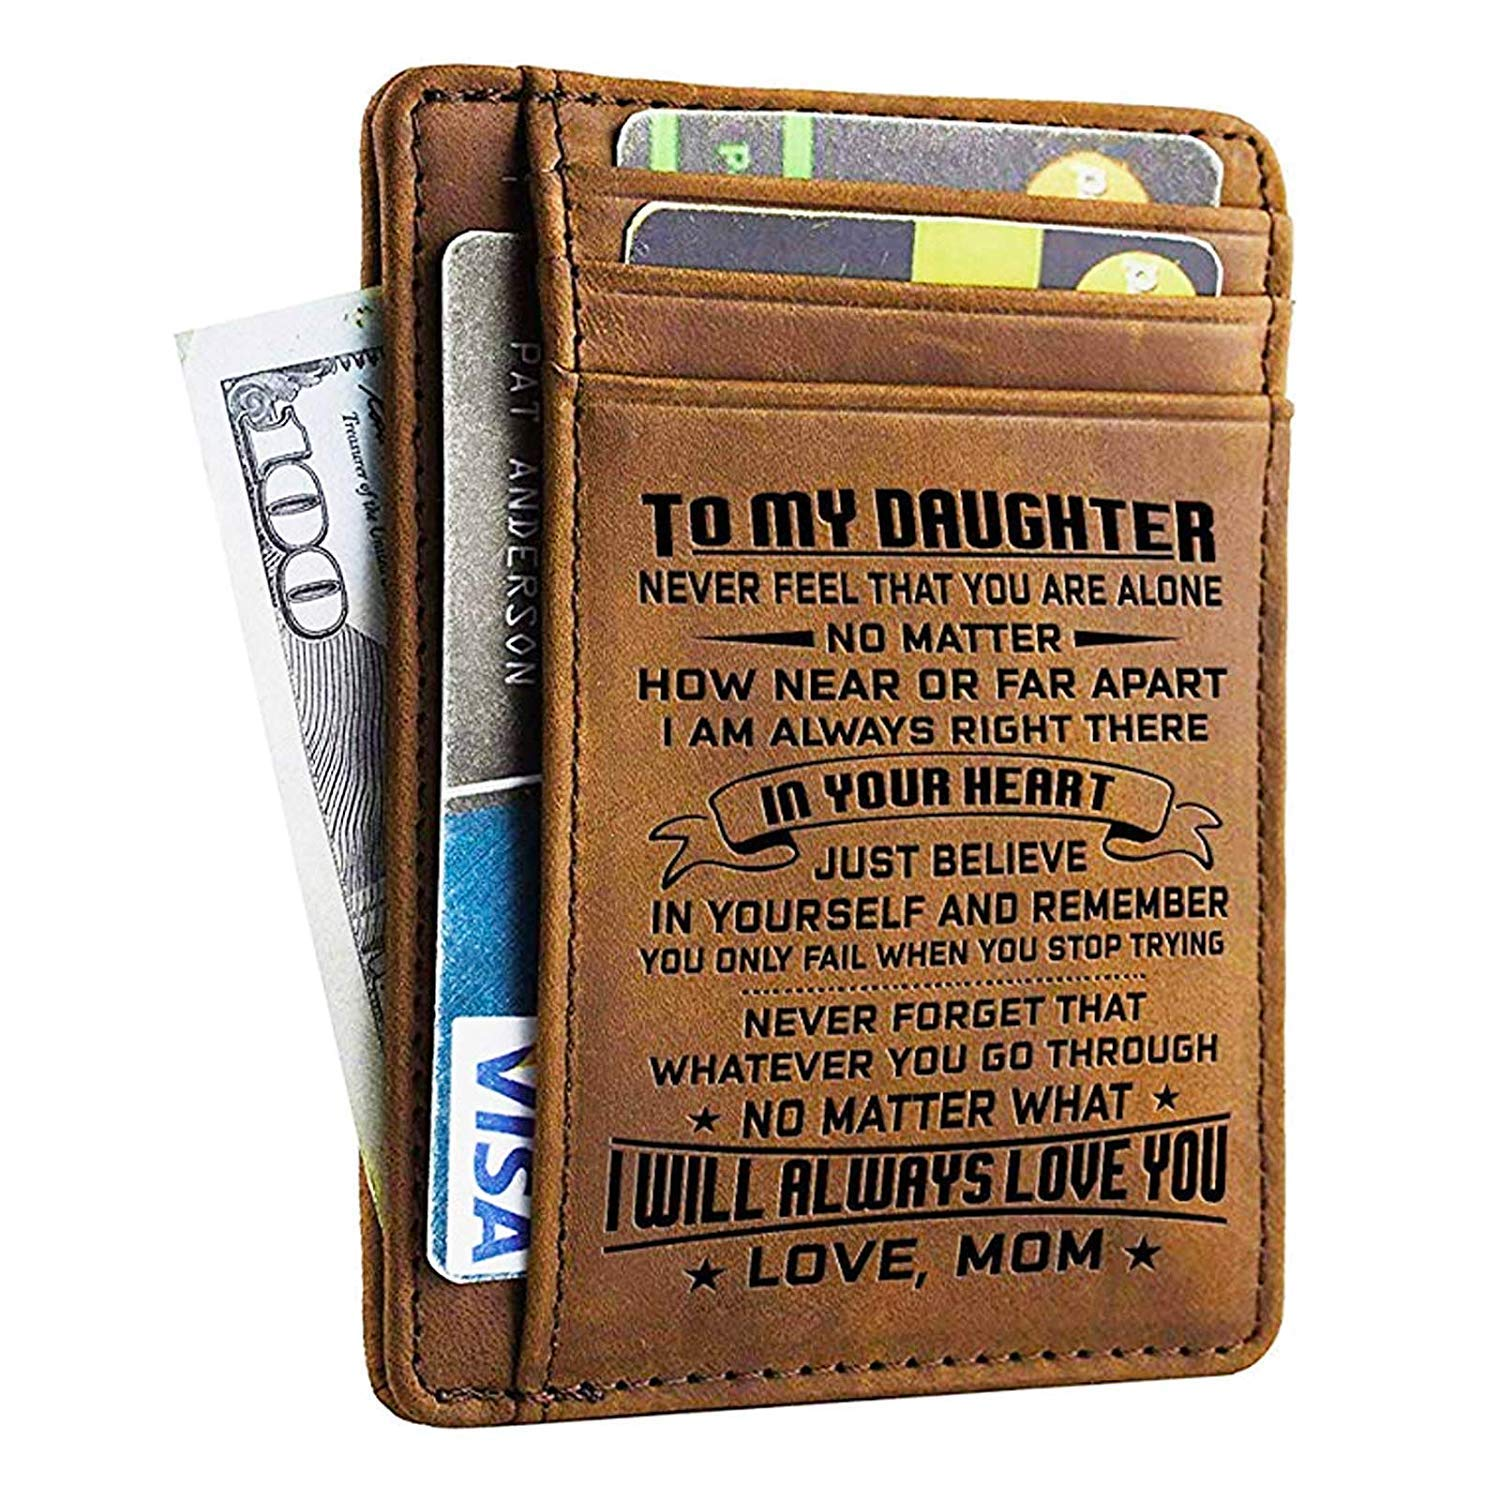 Engraved Pocket Wallet For Men - Personalized Minimalist Wallets Gift for Son Daughter from Dad/Mom Birthday Christmas Gift